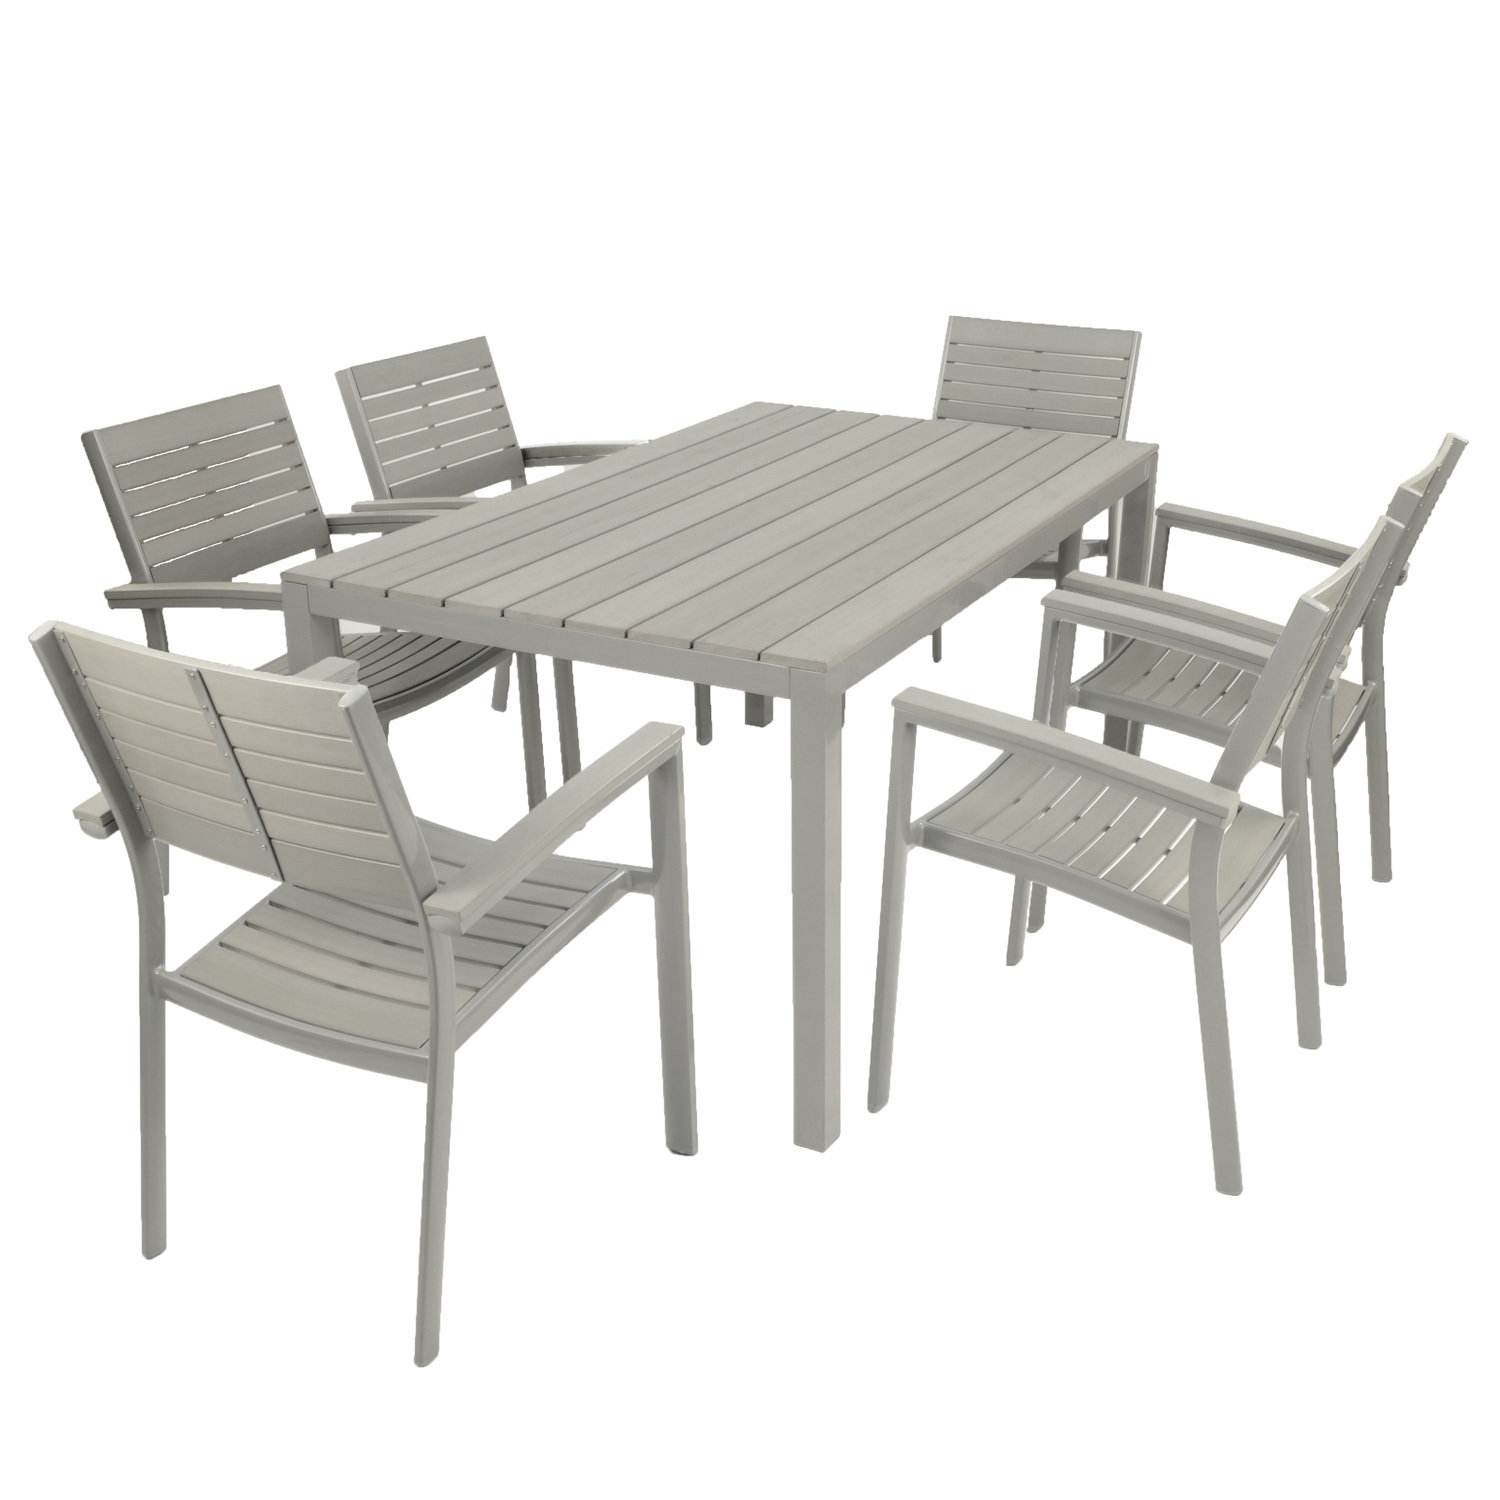 6 Chair Dining Set: Fontello 6 Chair Dining Set